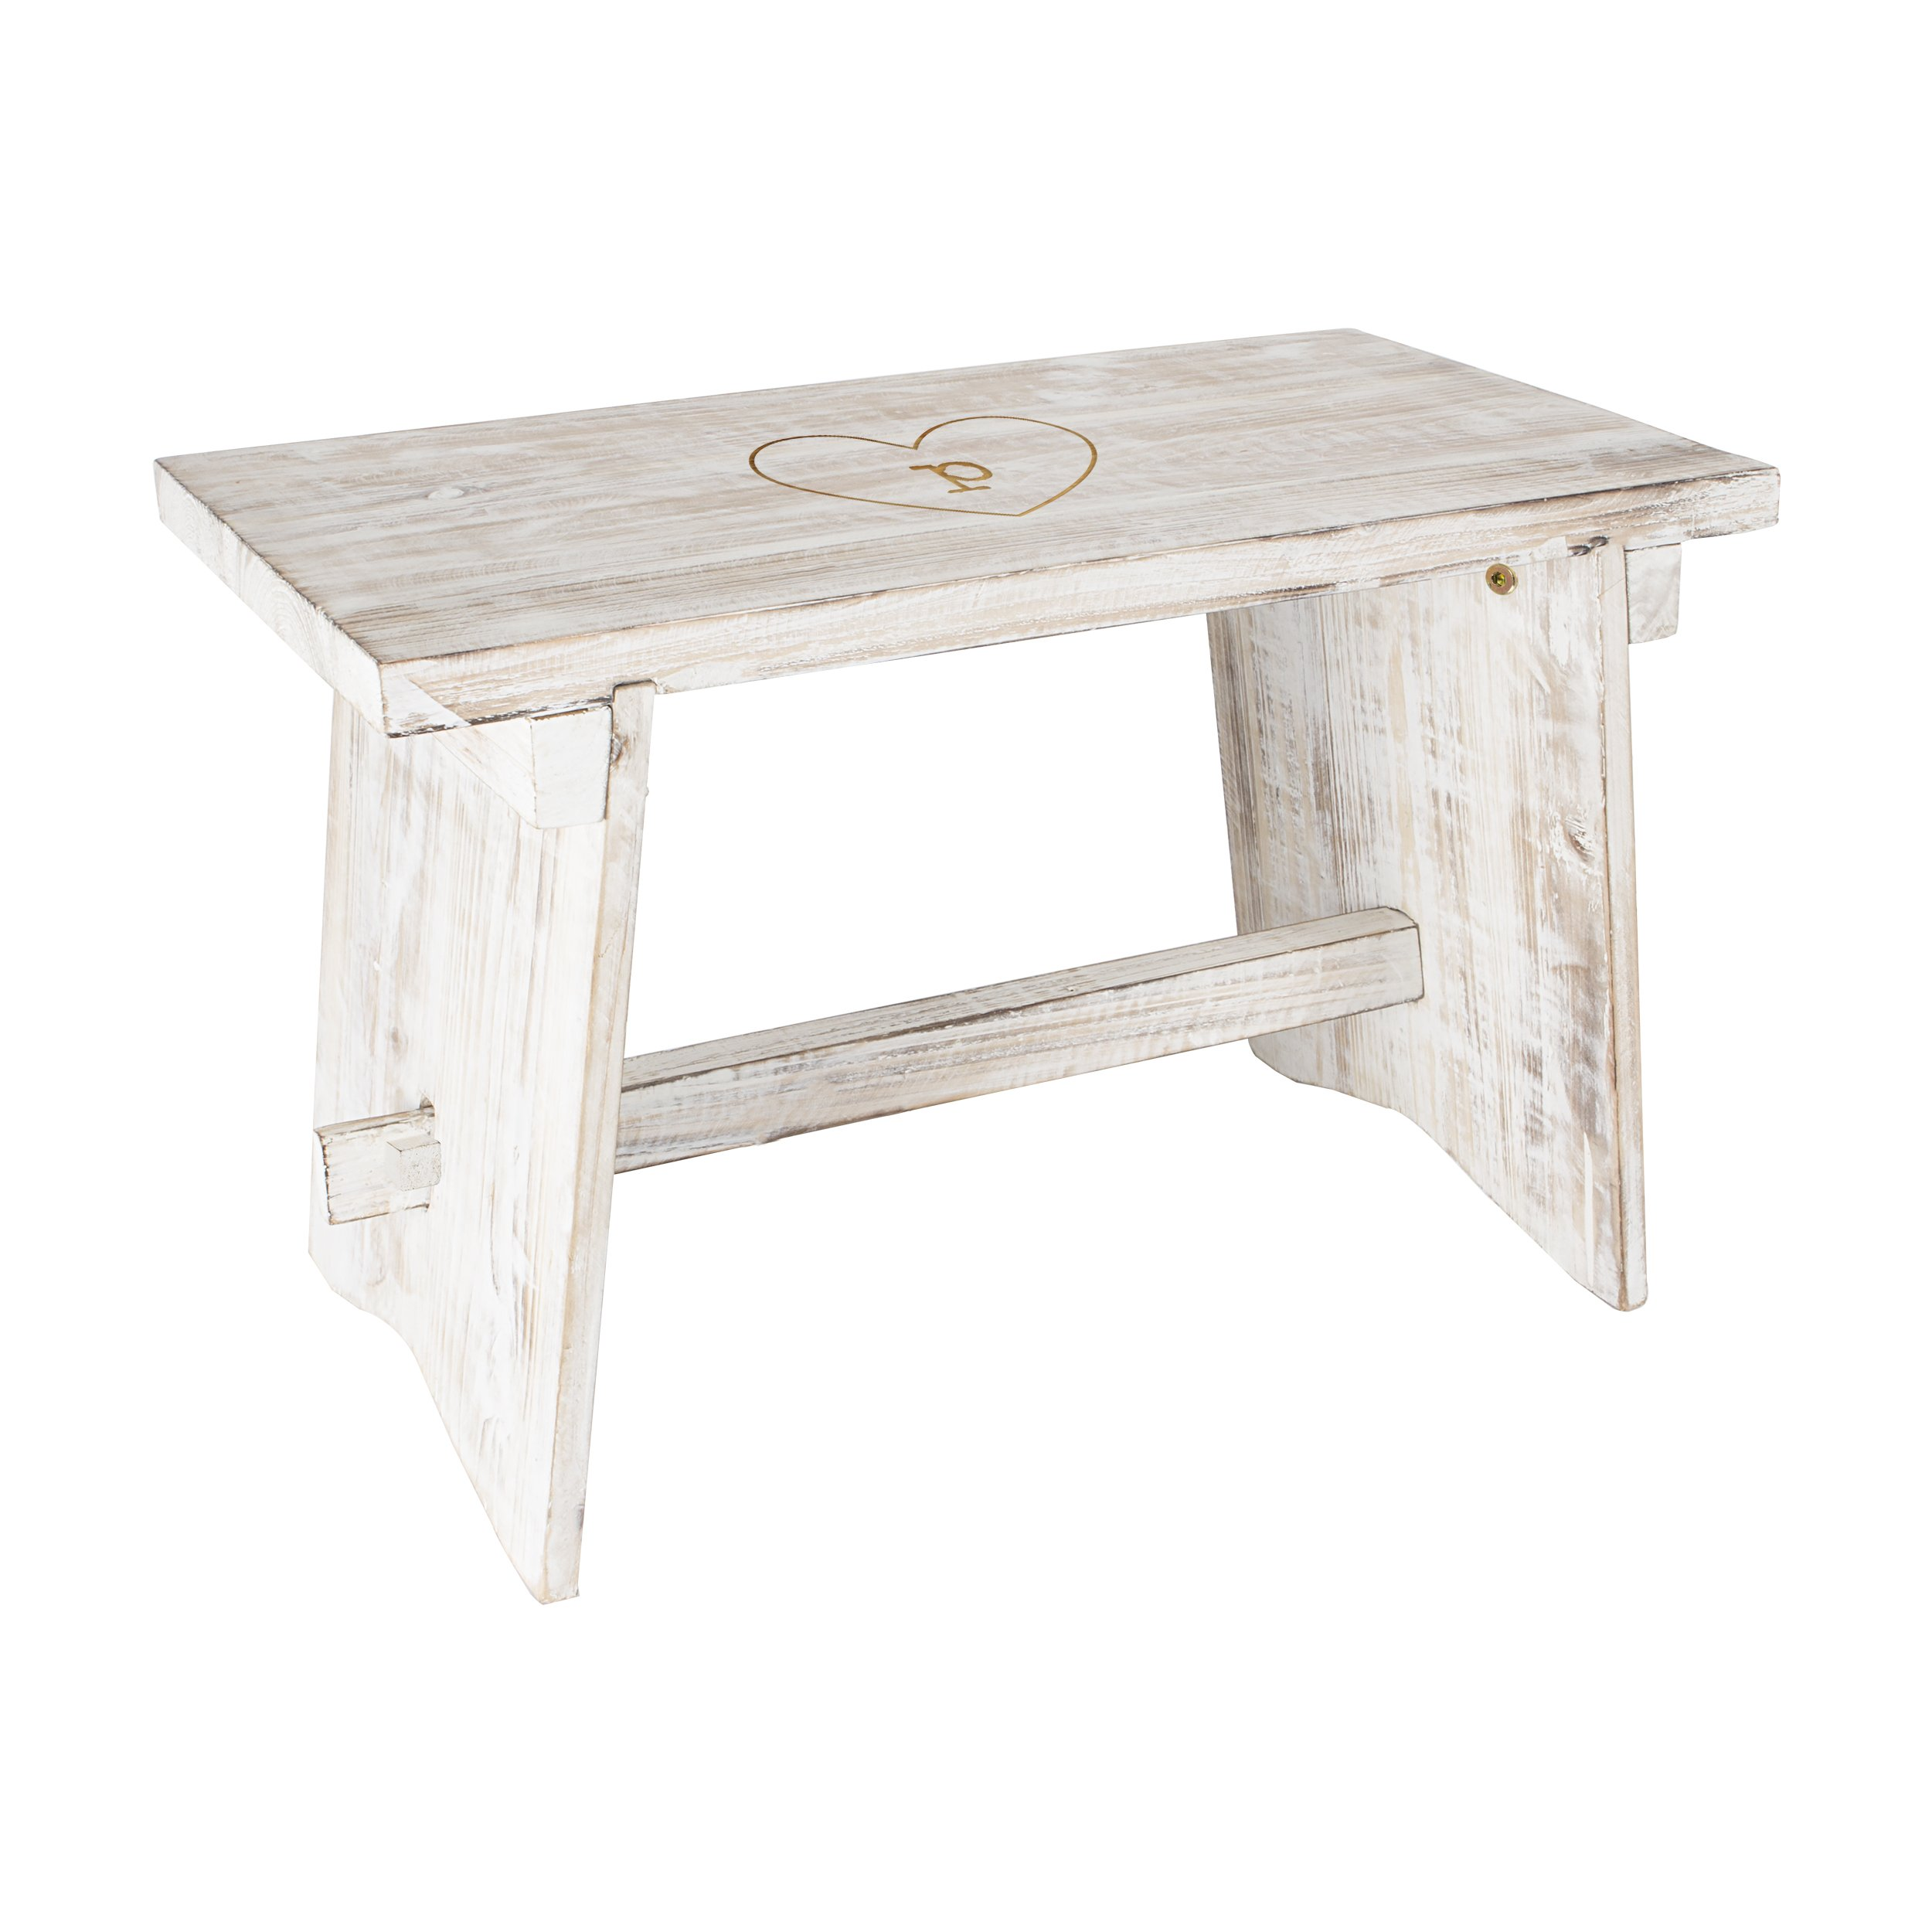 Cathy's Concepts HRT-3950-P Personalized Heart Rustic Wooden Guestbook Bench by Cathy's Concepts